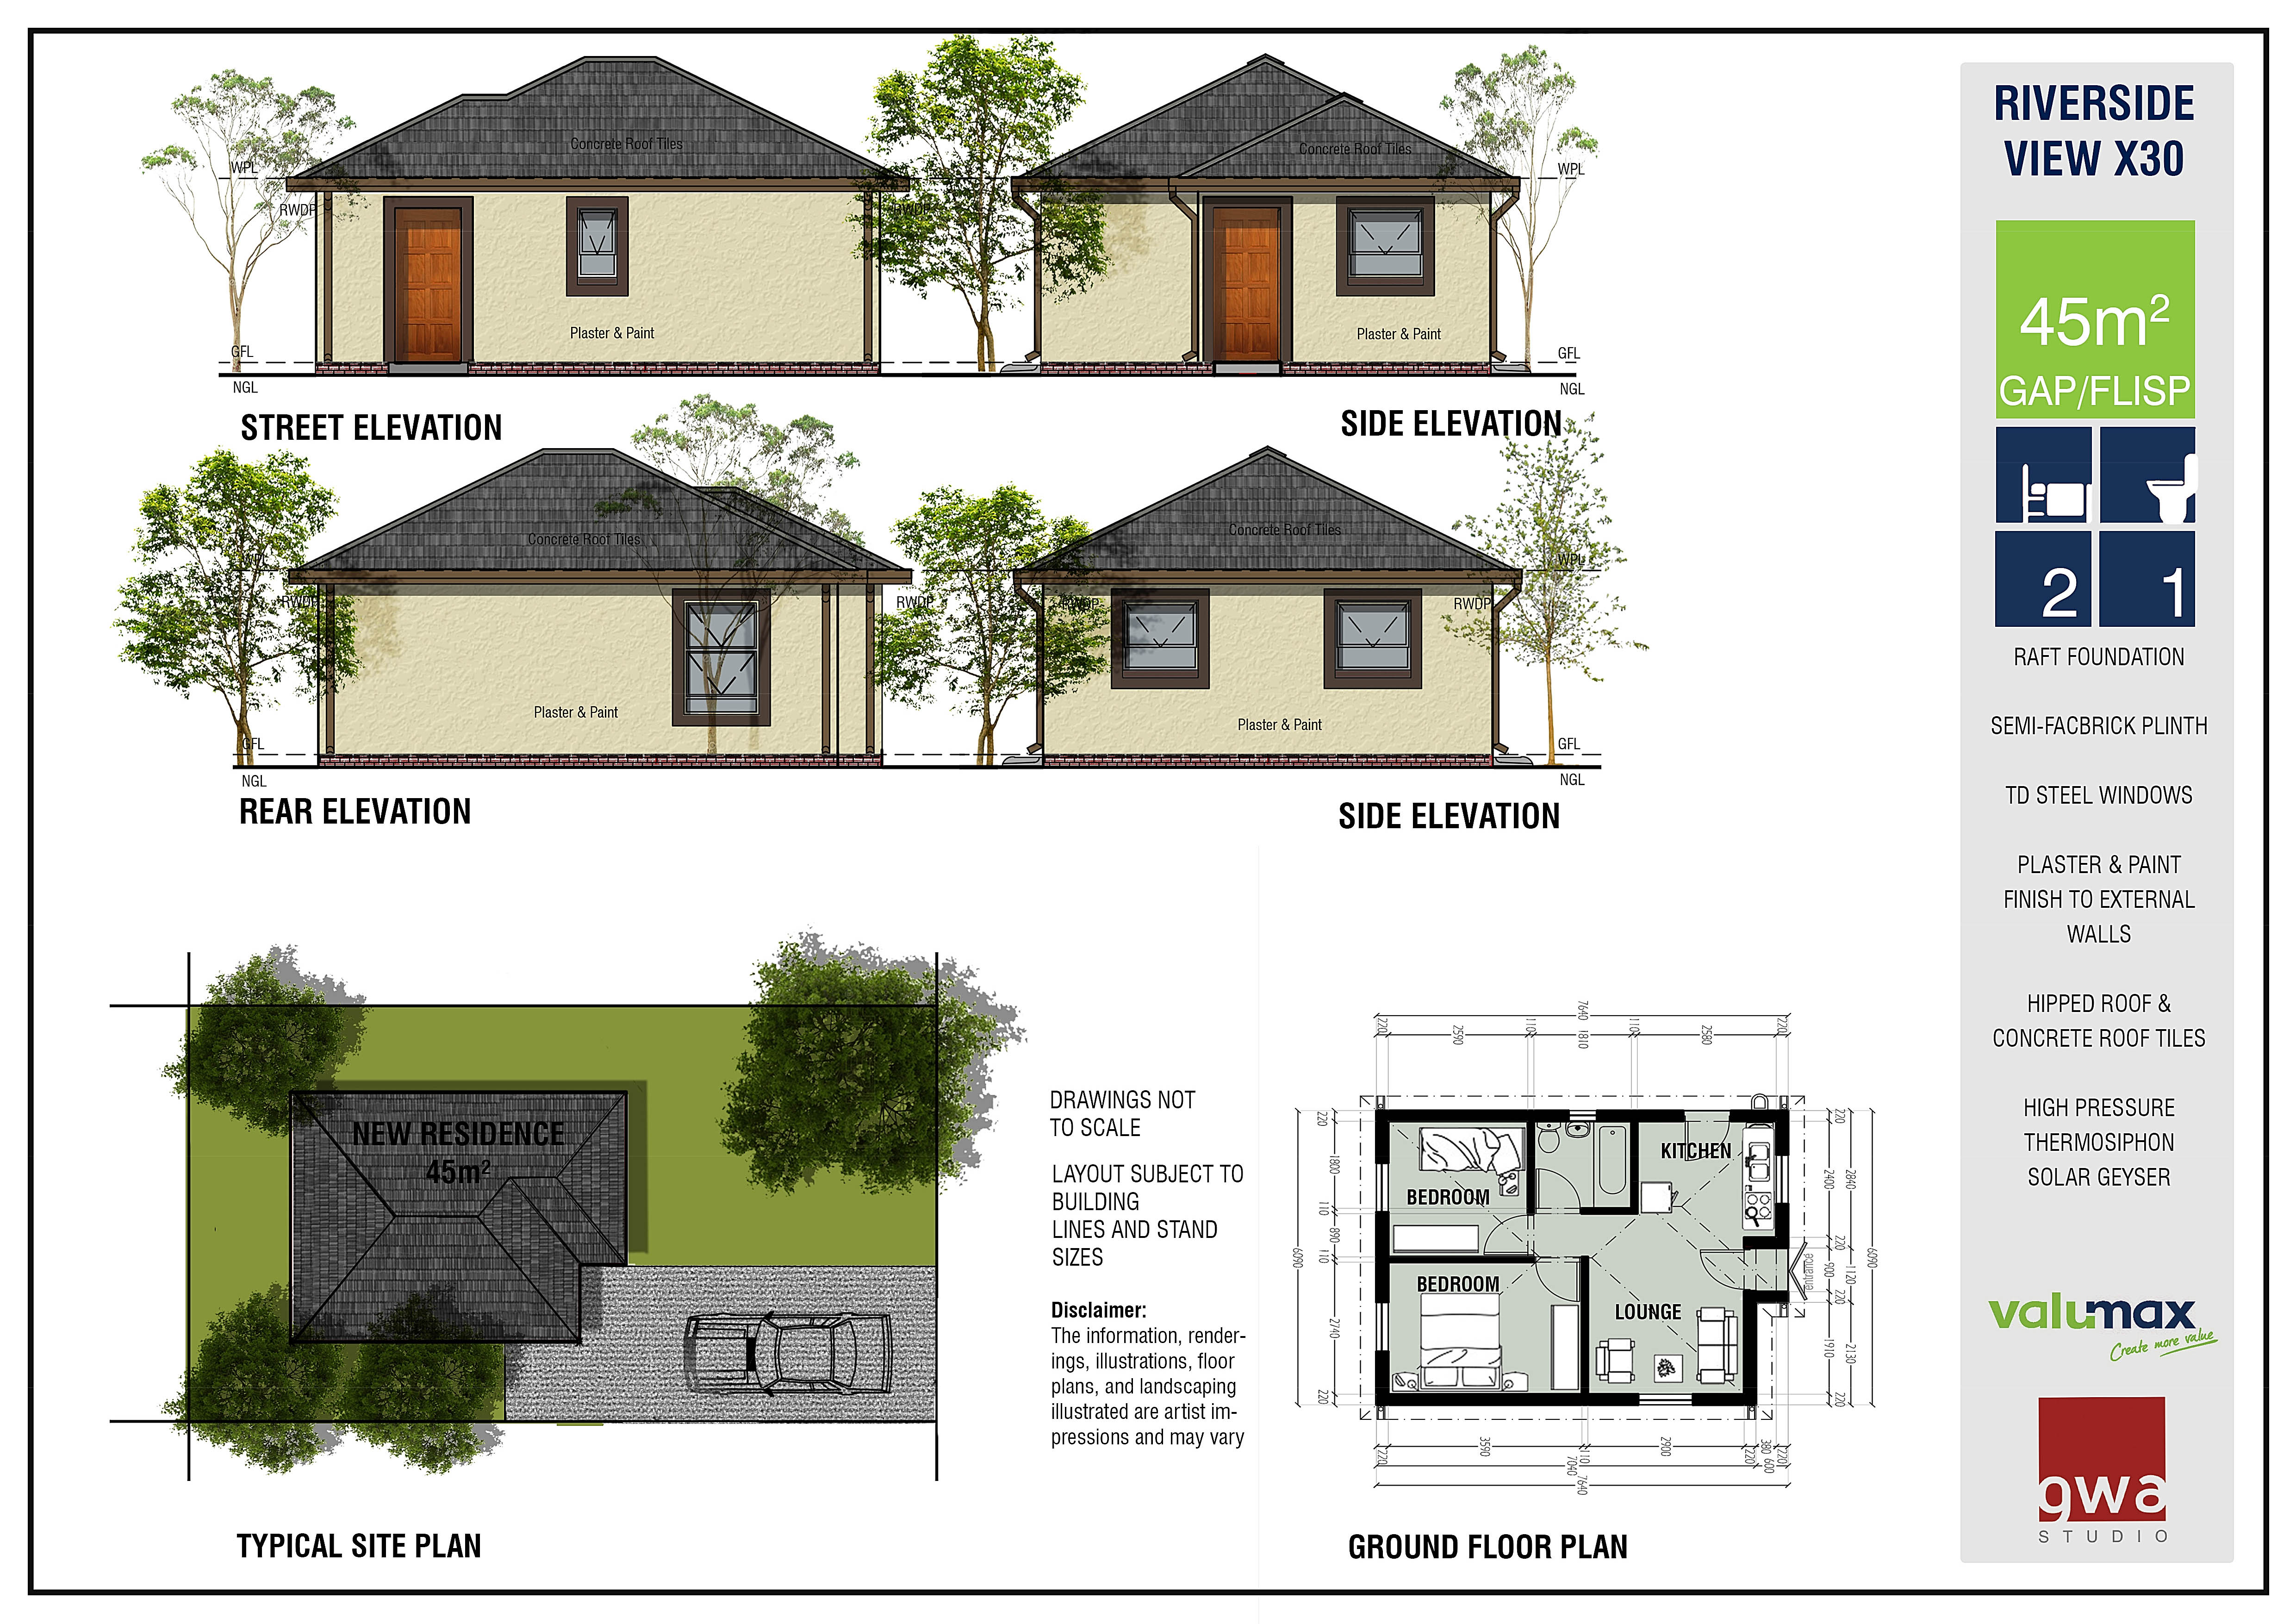 About riverside for Riverside house plans